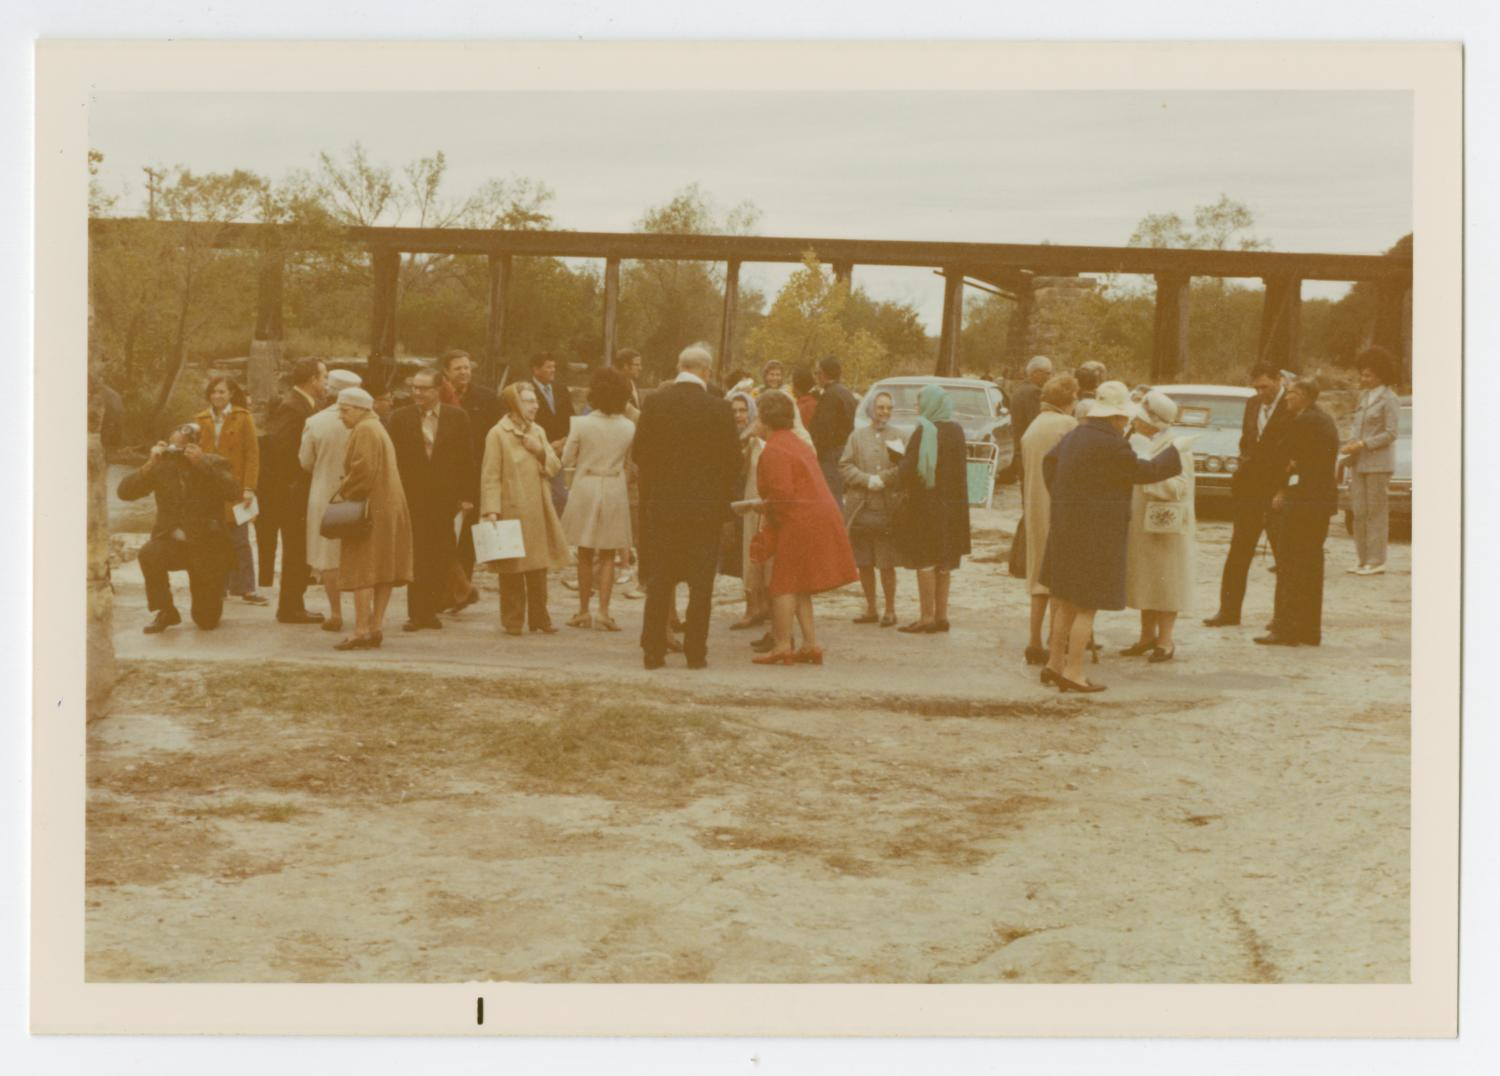 [Group at Dedication of Round Rock Marker], Photograph taken facing west of a group of people gathered around for a historic marker dedication ceremony for Round Rock in Brushy Creek. Cars can be seen behind the group, and a railroad bridge can be seen in the background. A man on the left can be seen kneeling to take a picture of something out of view.,